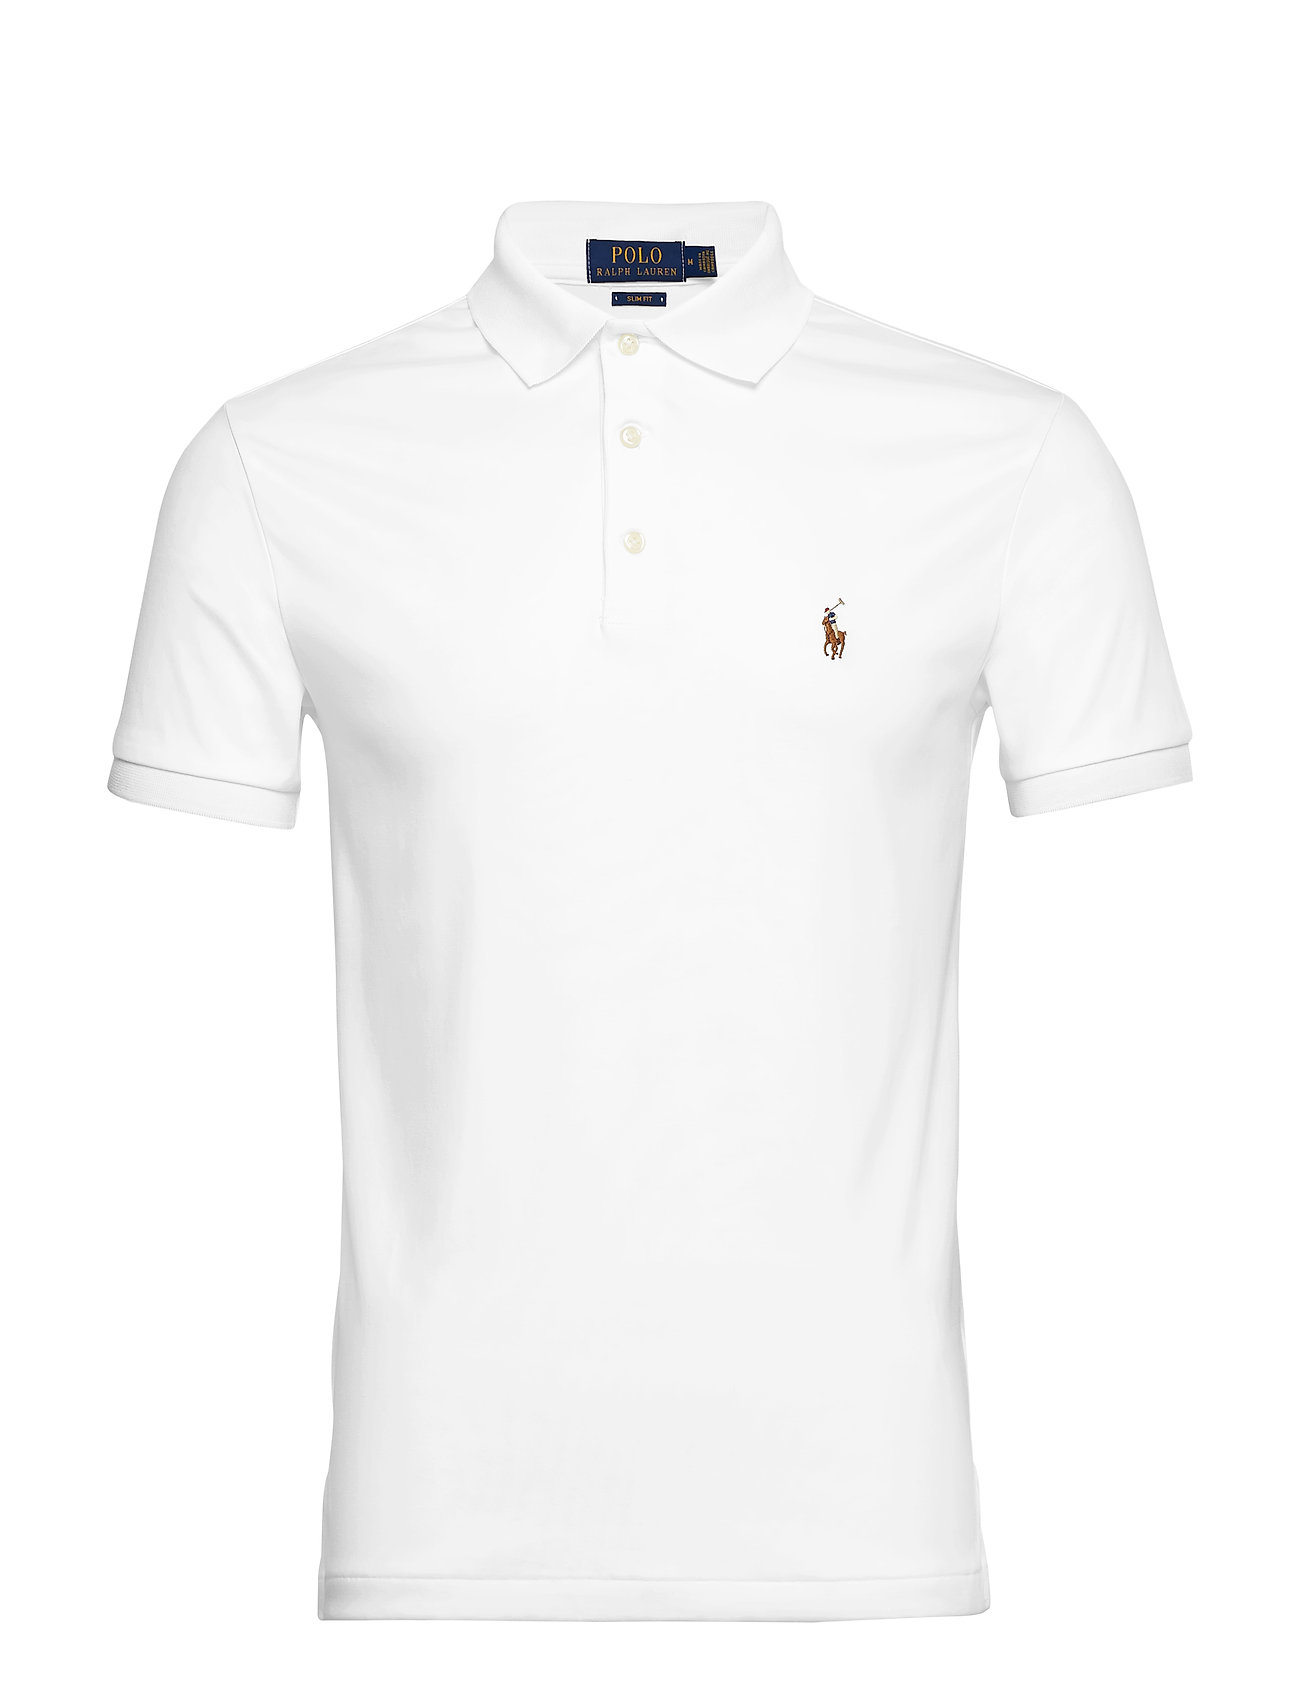 Polo Ralph Lauren Slim Fit Soft-Touch Polo Shirt